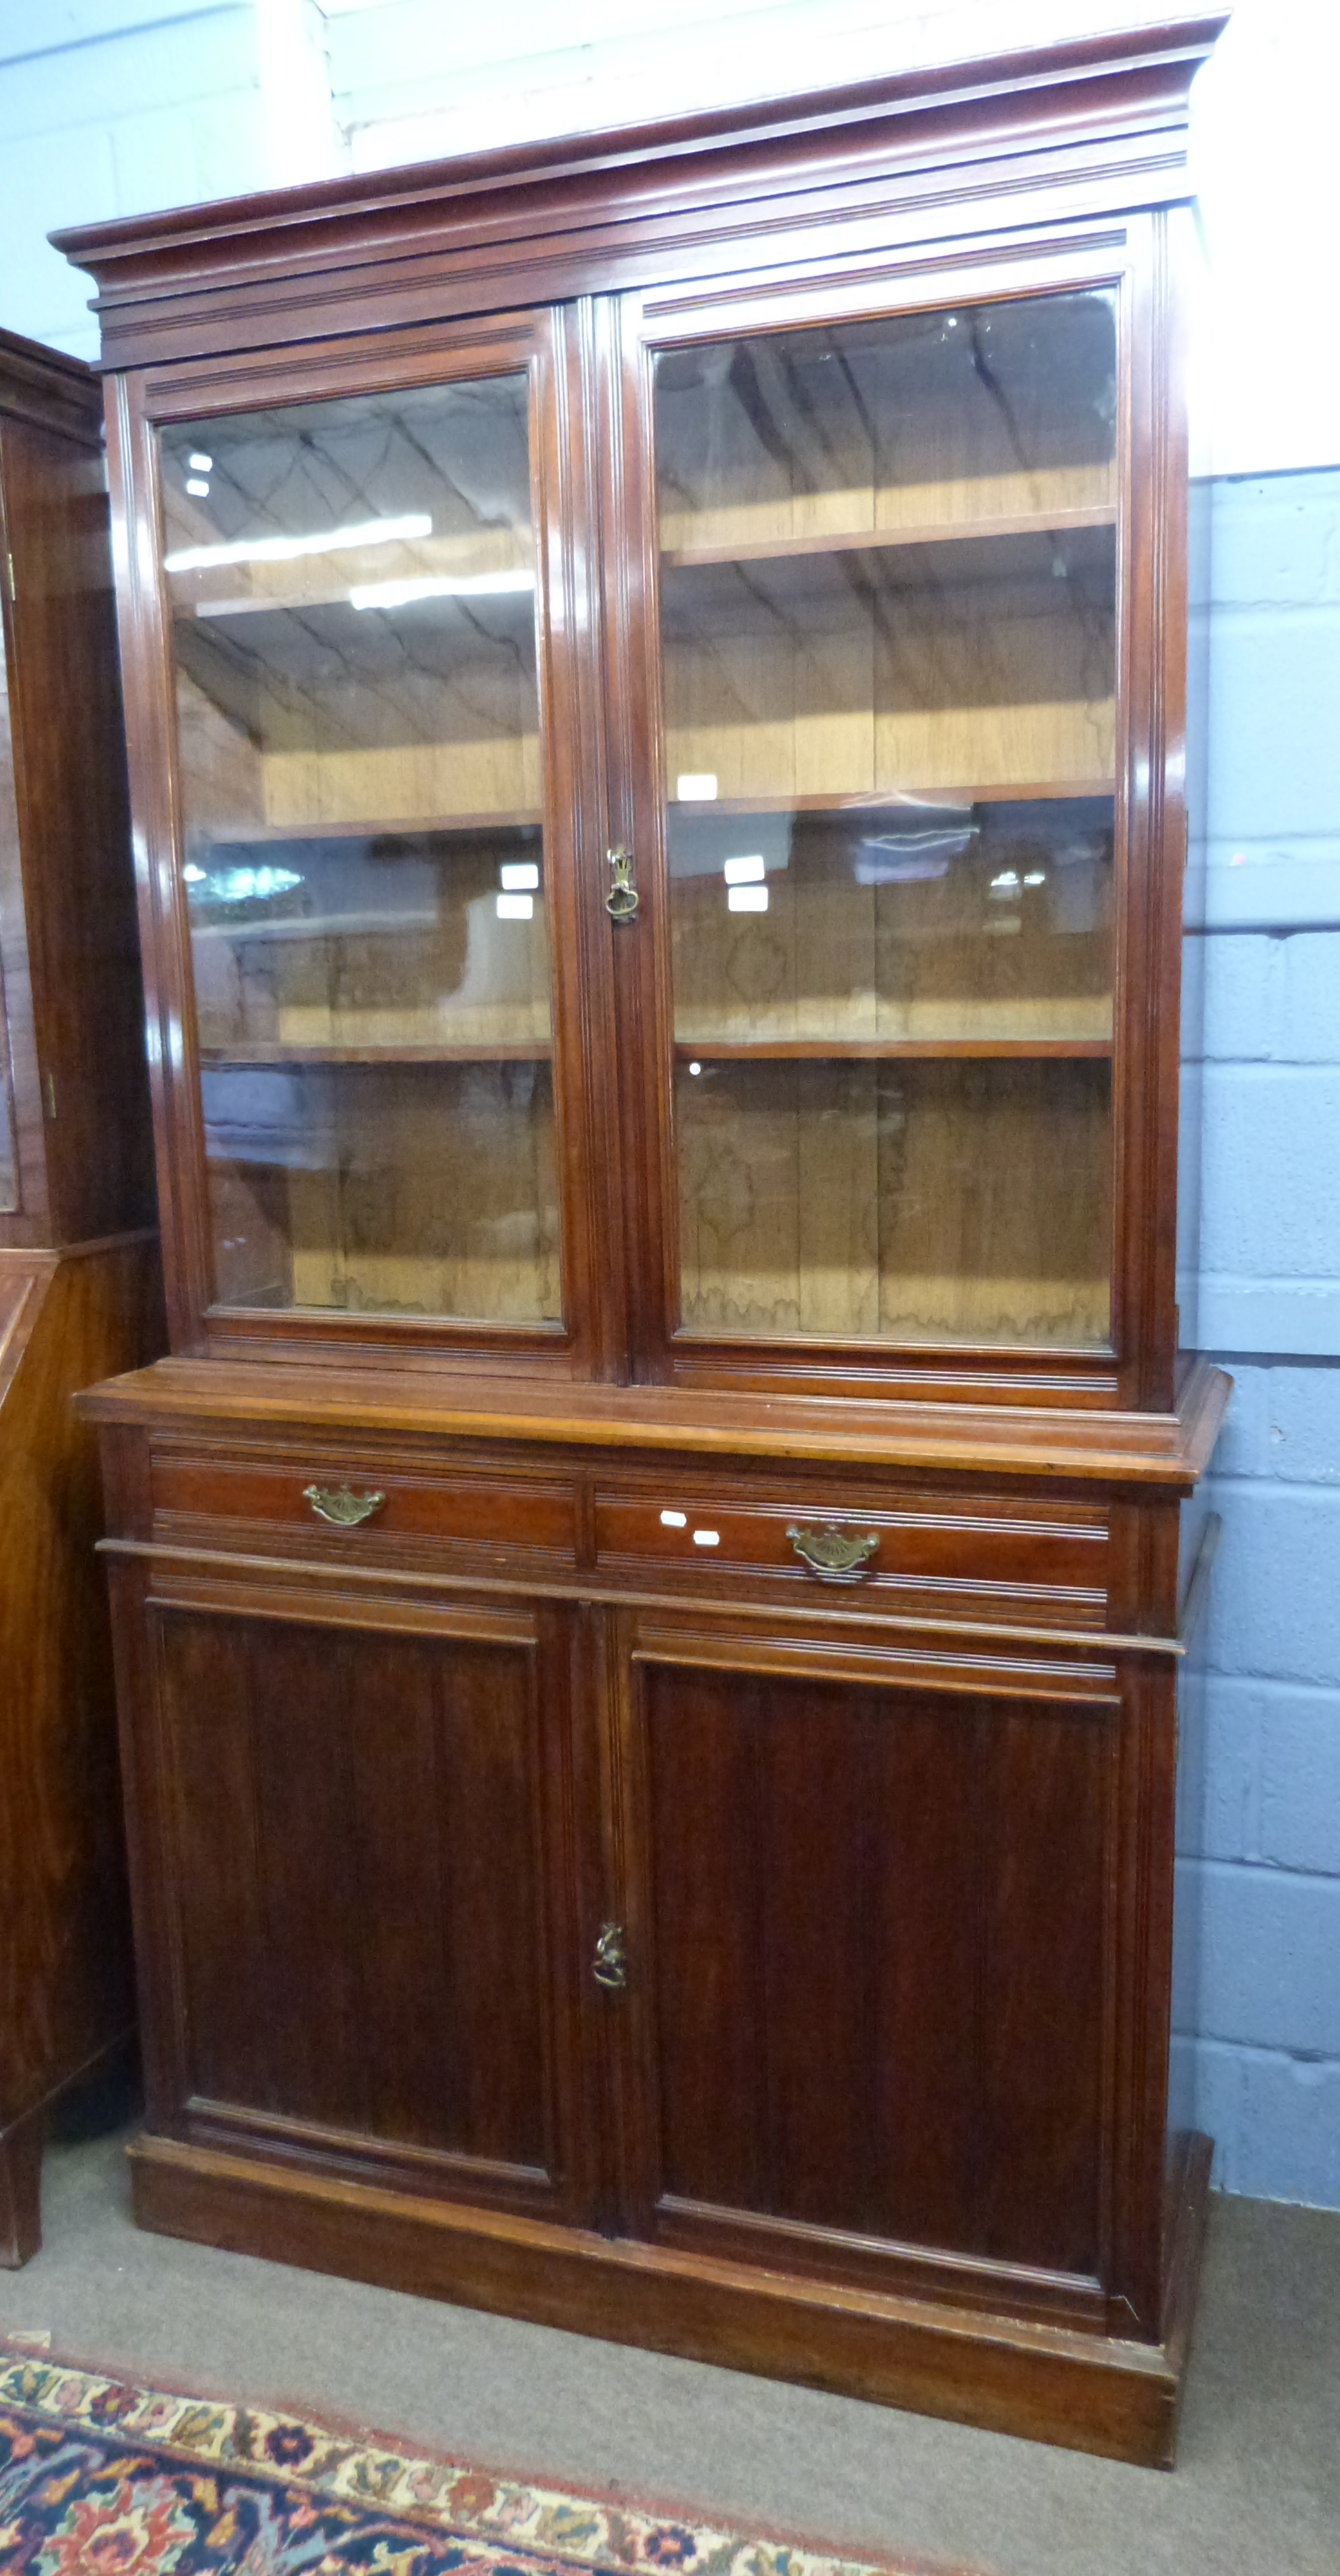 Full height mahogany side cabinet with glazed bookcase raised over double cupboard, width approx - Image 2 of 3